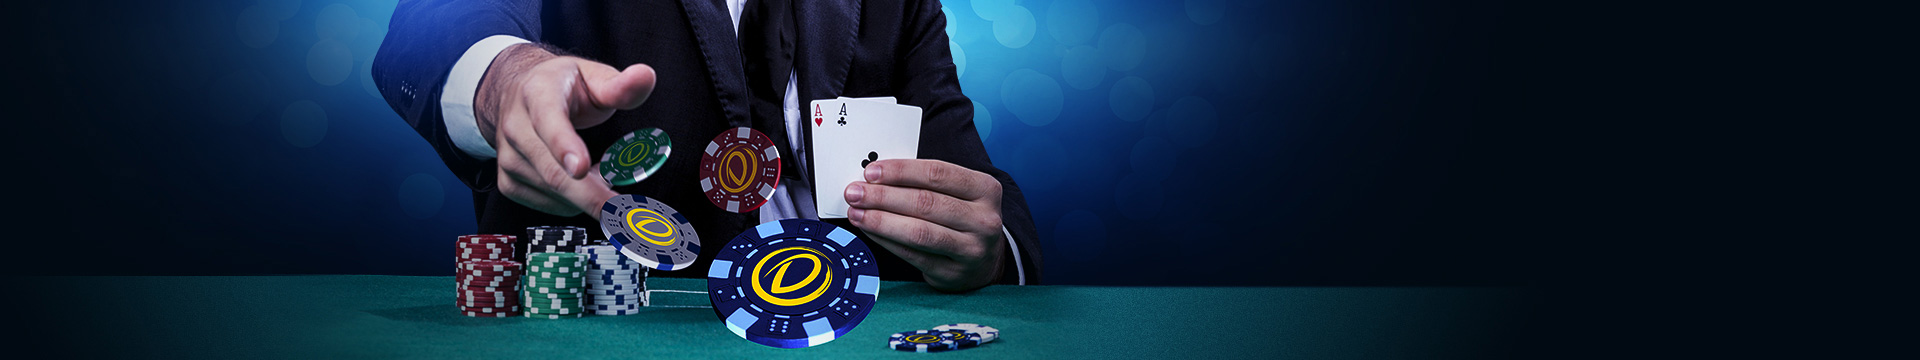 Up to 1,500 Euros can be claimed with Dafabet Poker